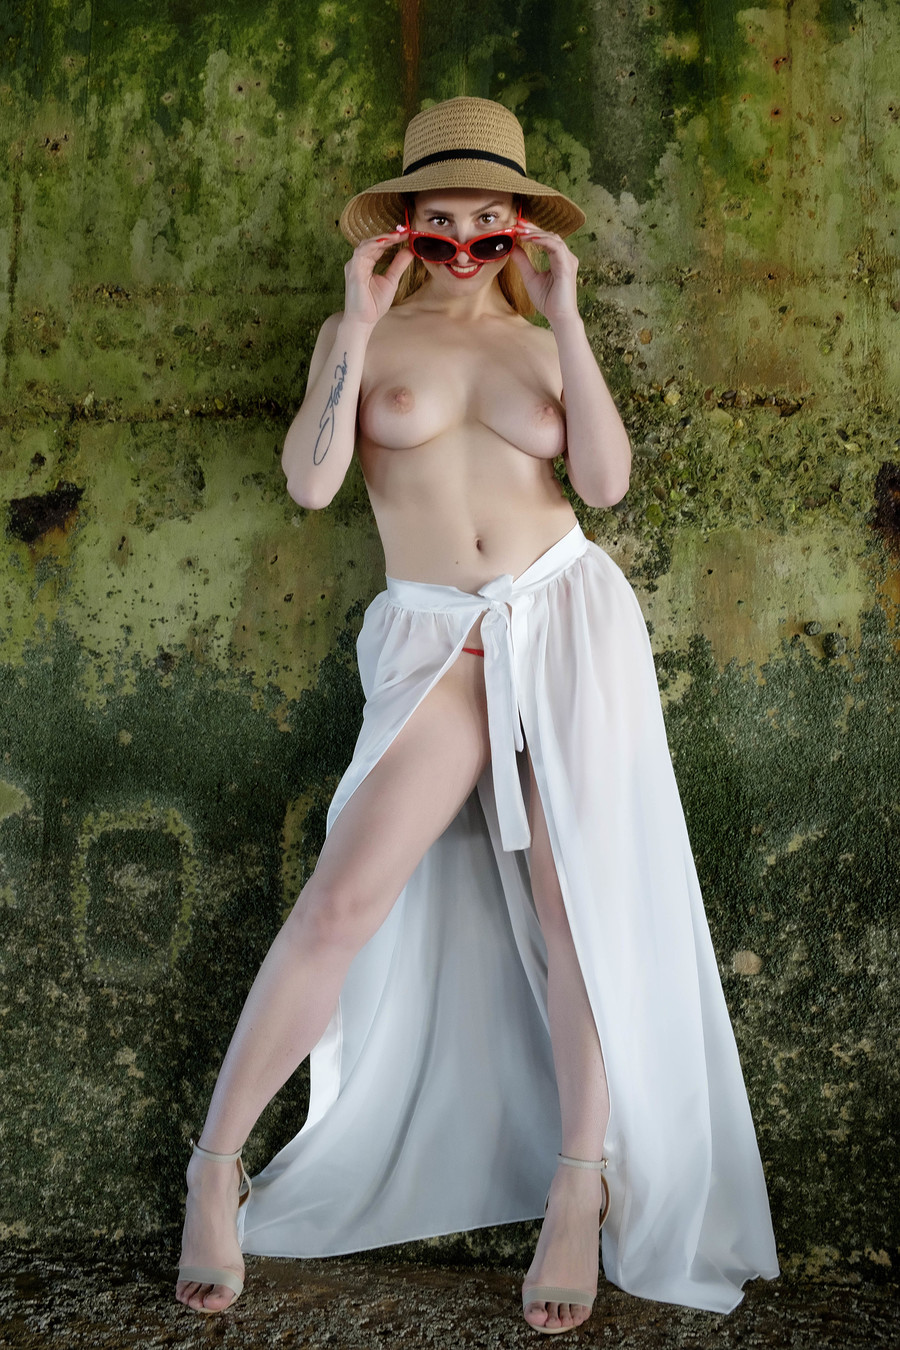 Pier / Photography by shutterman, Model Cleo P / Uploaded 24th June 2020 @ 11:14 AM